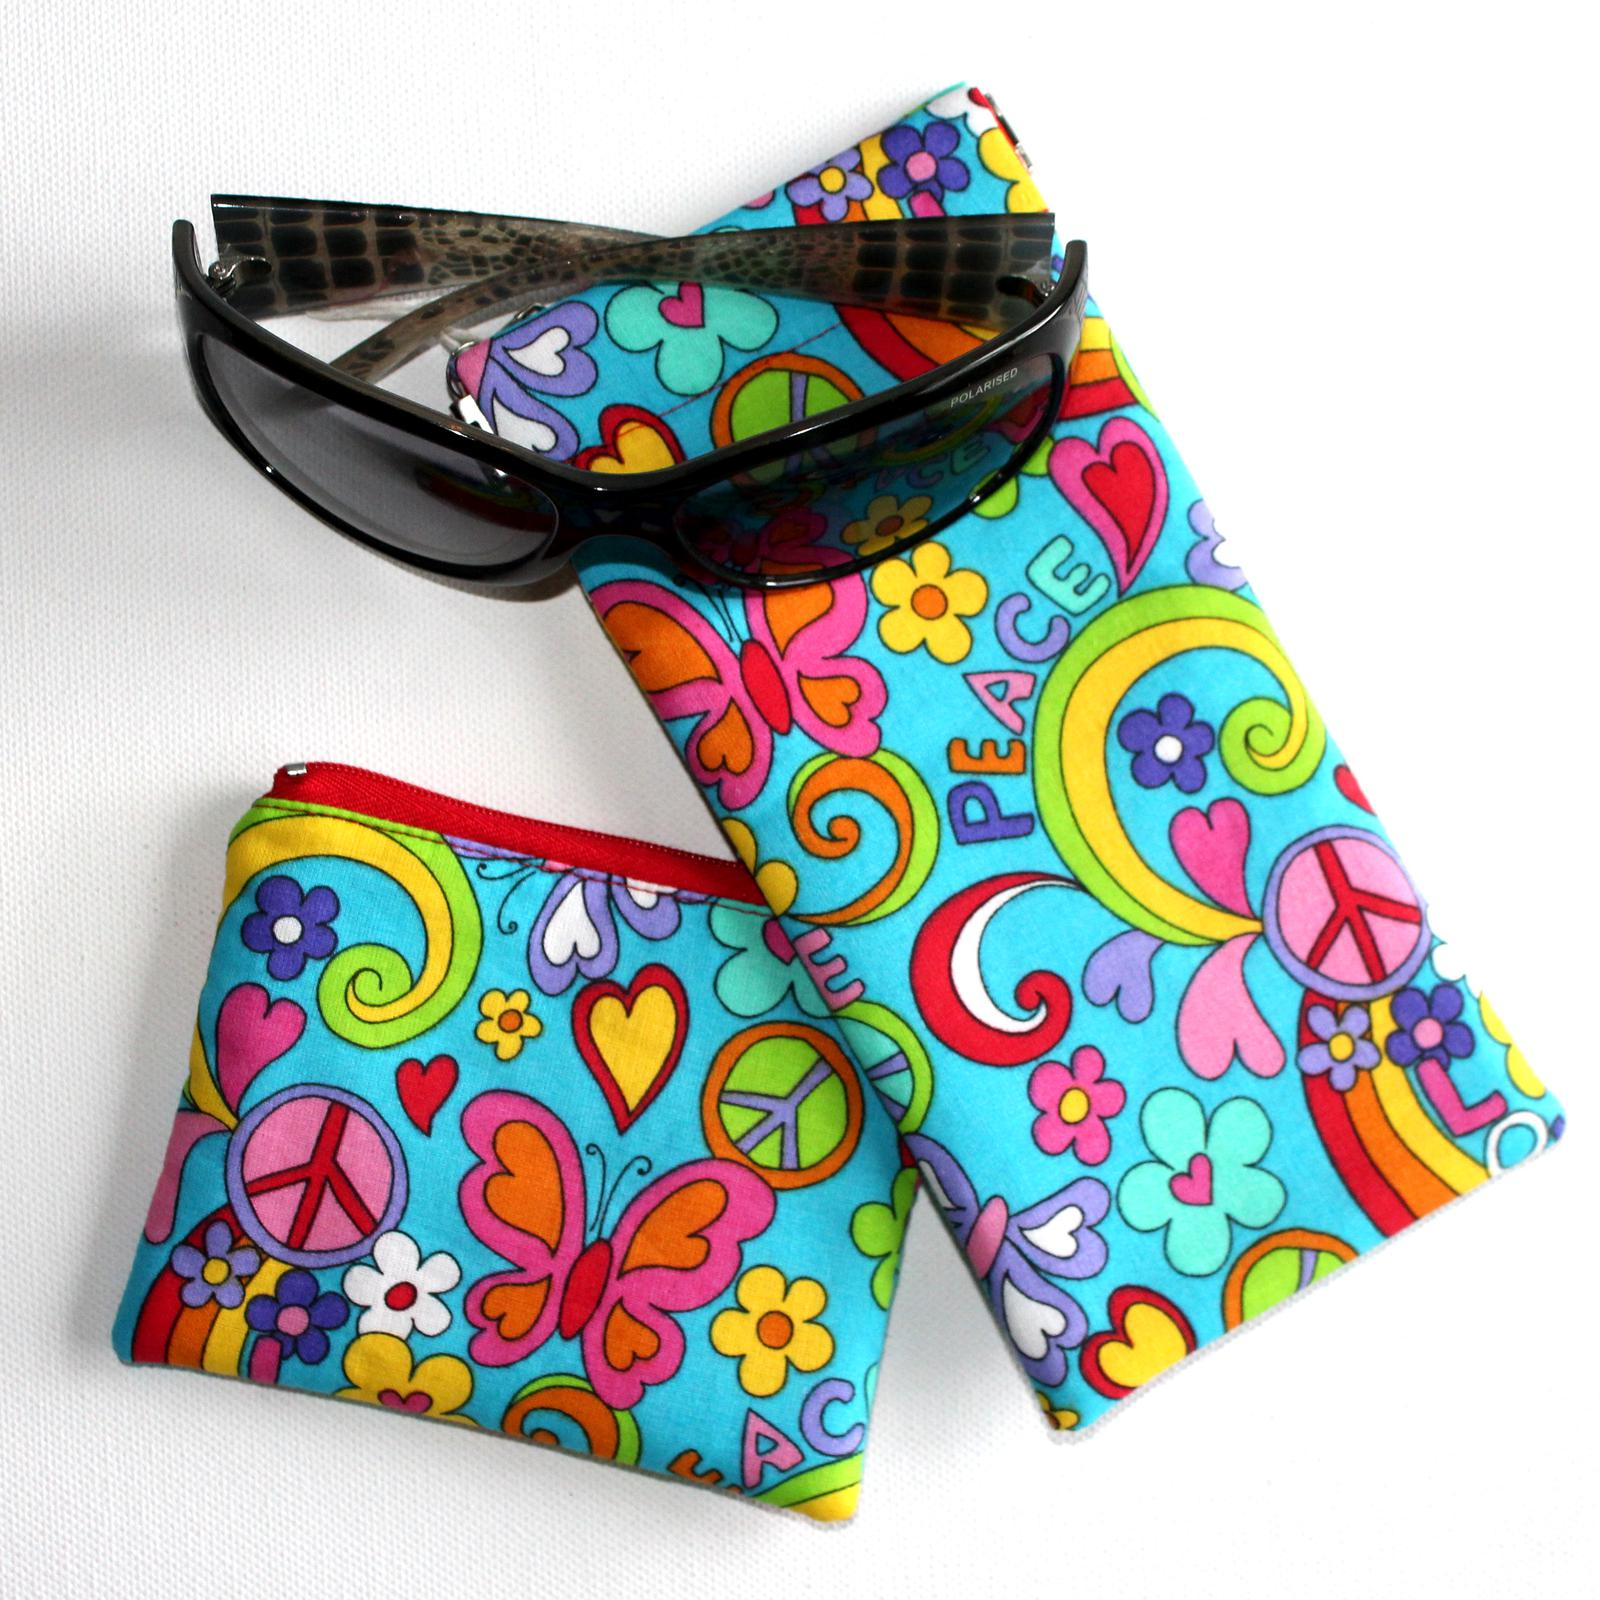 Coin purse and sunglass pouch